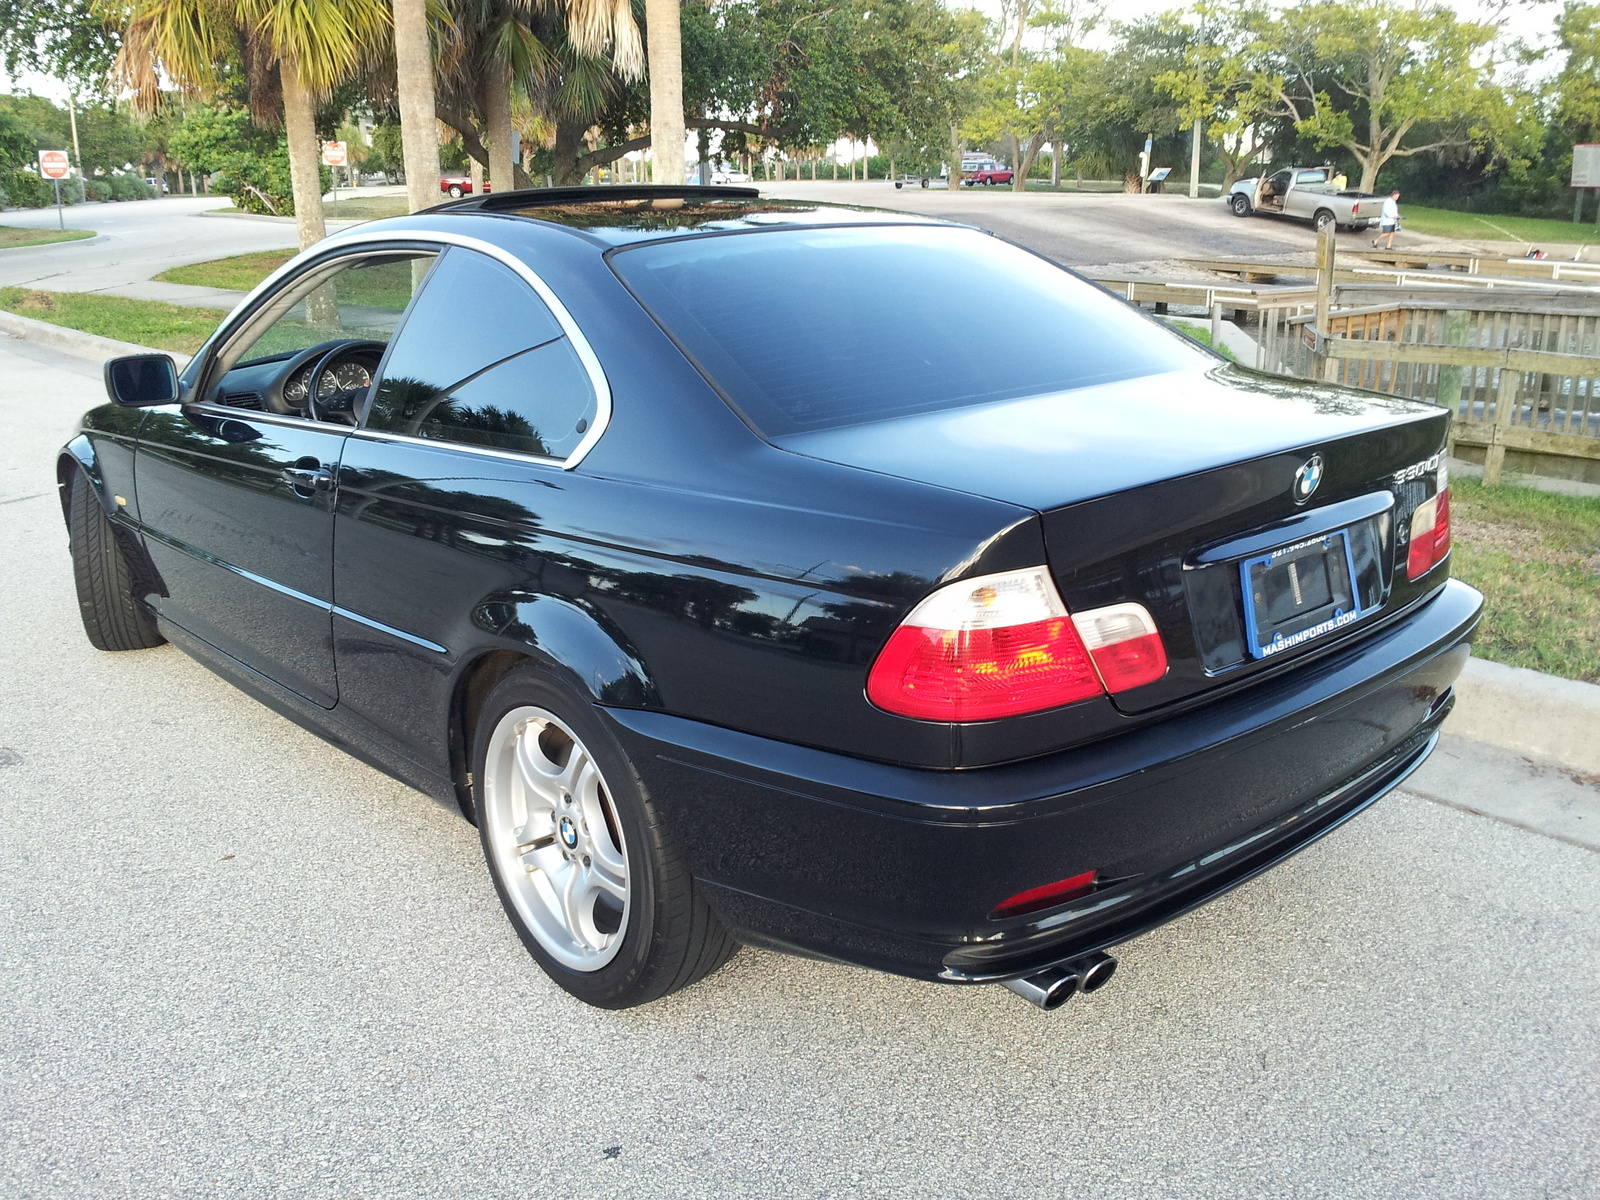 BMW 3 series 330Ci 2002 photo - 4